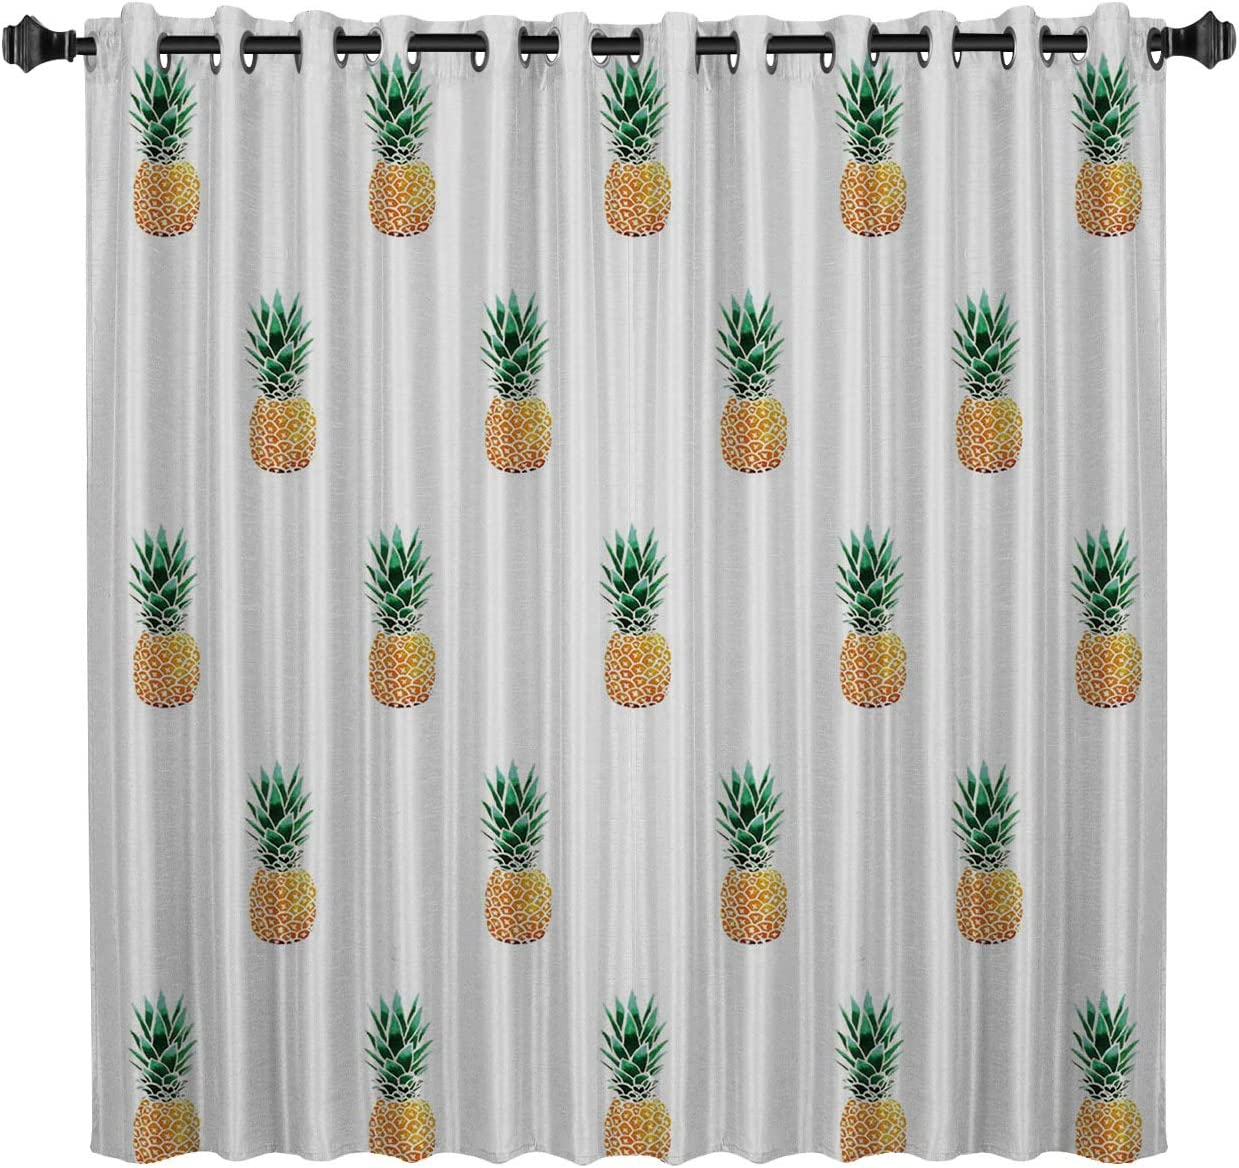 BedSweet Blackout Room Darkening Curtains, 52 by 96 Inch Tropical Fruit Decor,Yellow Pineapple Window Panel Drapes for Kitchen Bedroom